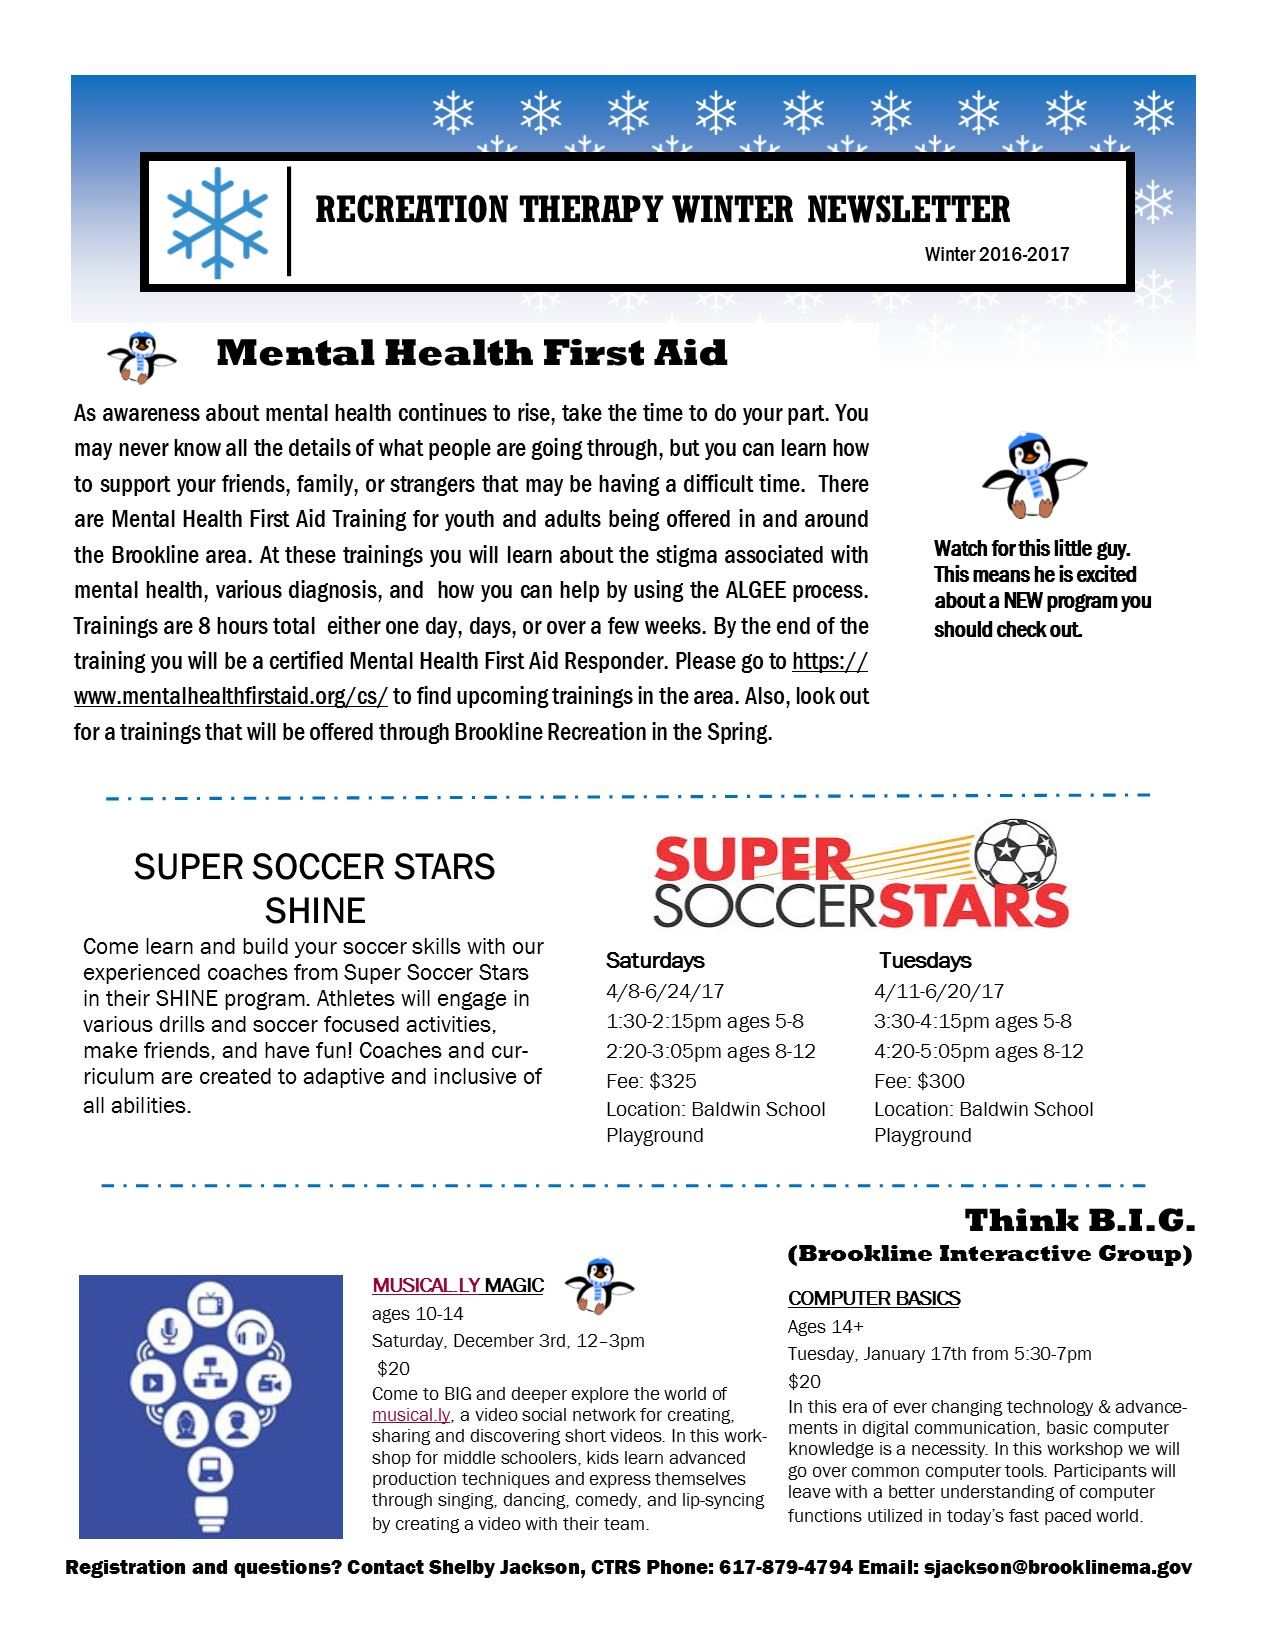 Winter Newsletter 16-17_Page_1